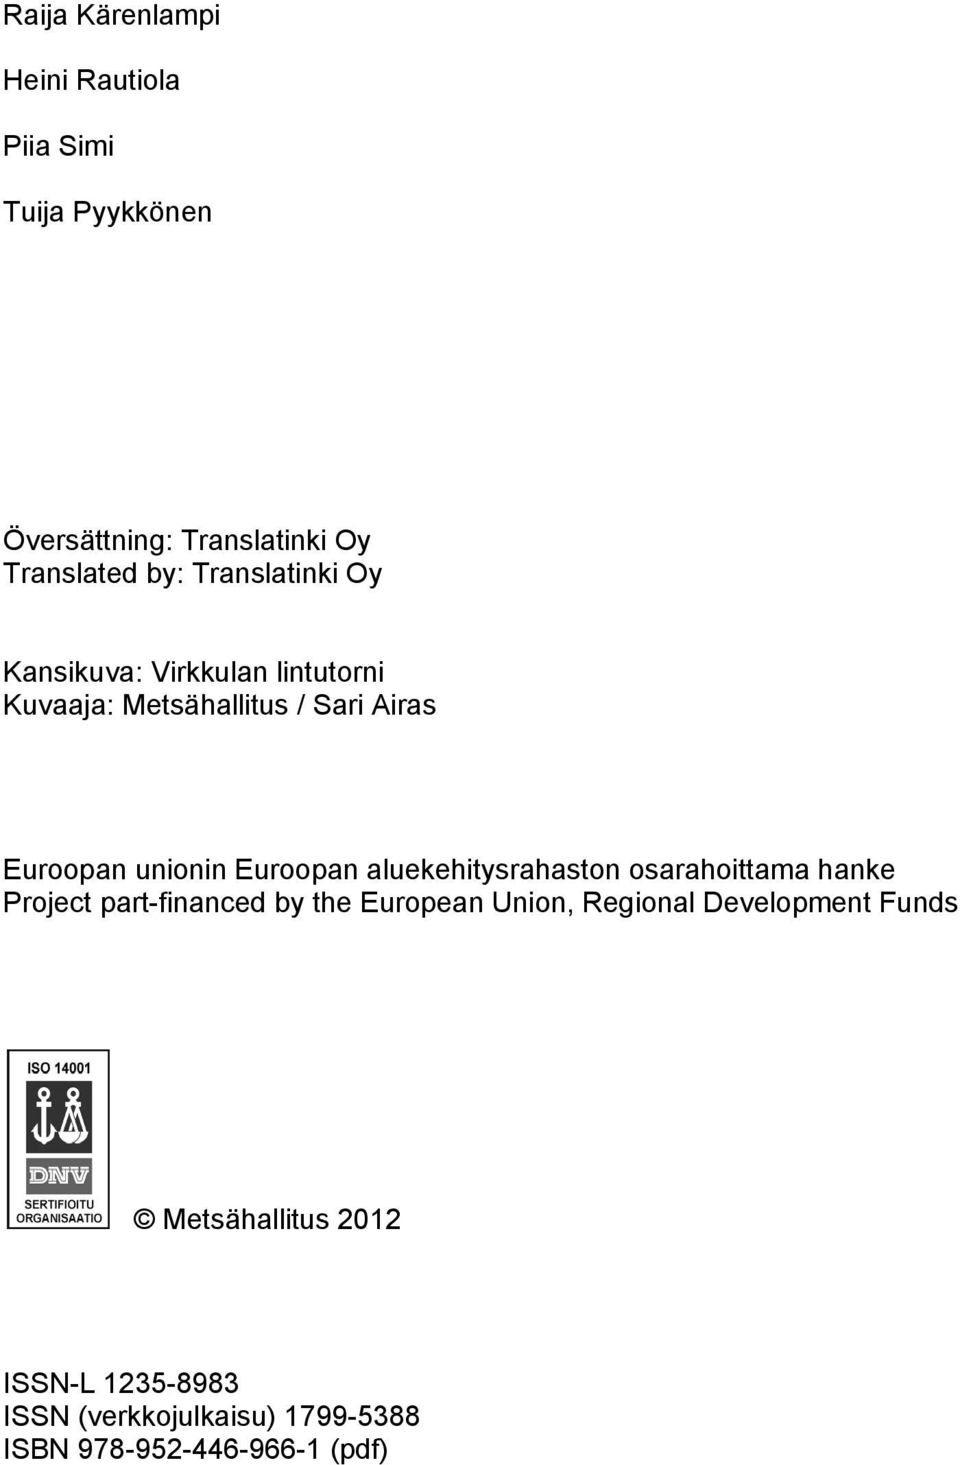 Euroopan aluekehitysrahaston osarahoittama hanke Project part-financed by the European Union, Regional